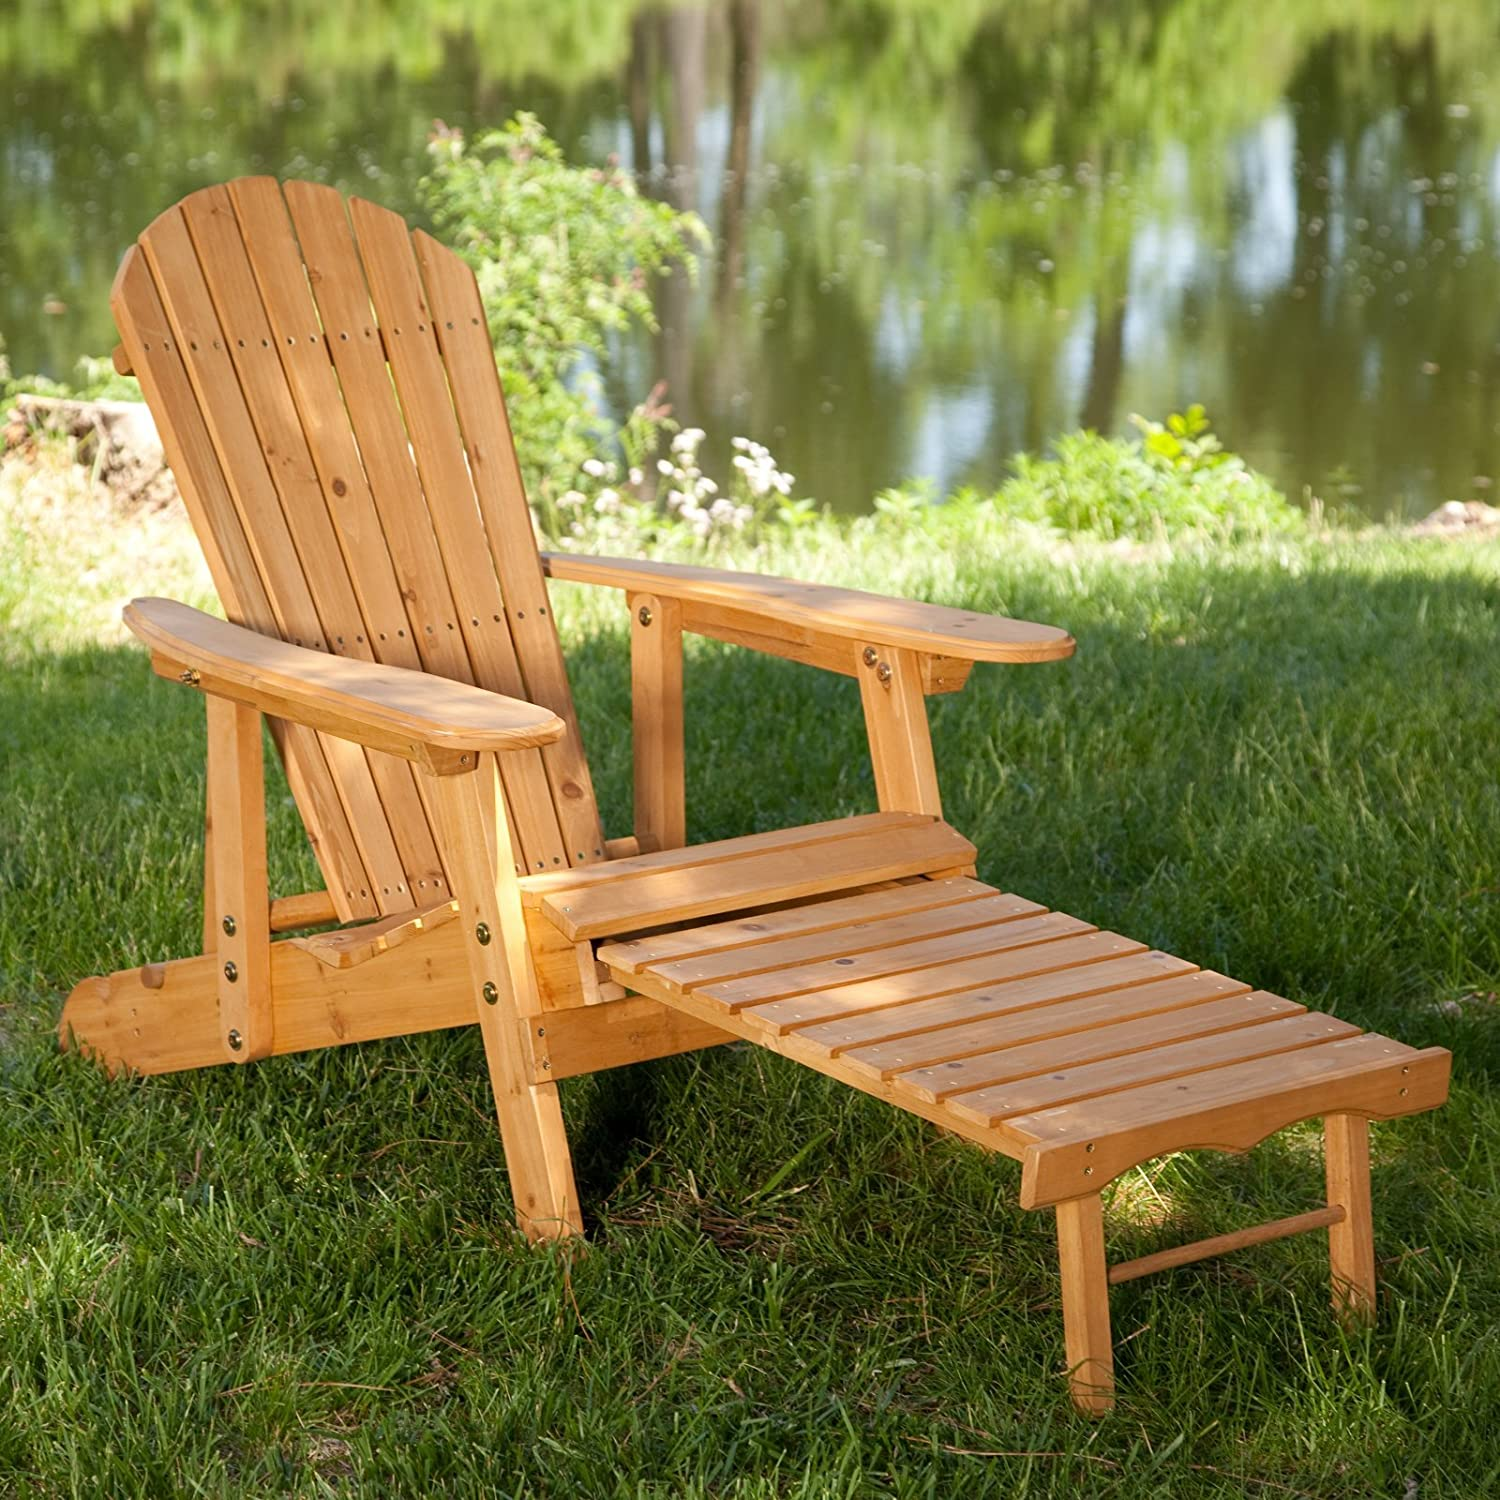 Amazon.com : Big Daddy Reclining Adirondack Chair Set With FREE Side Table    Natural : Garden U0026 Outdoor